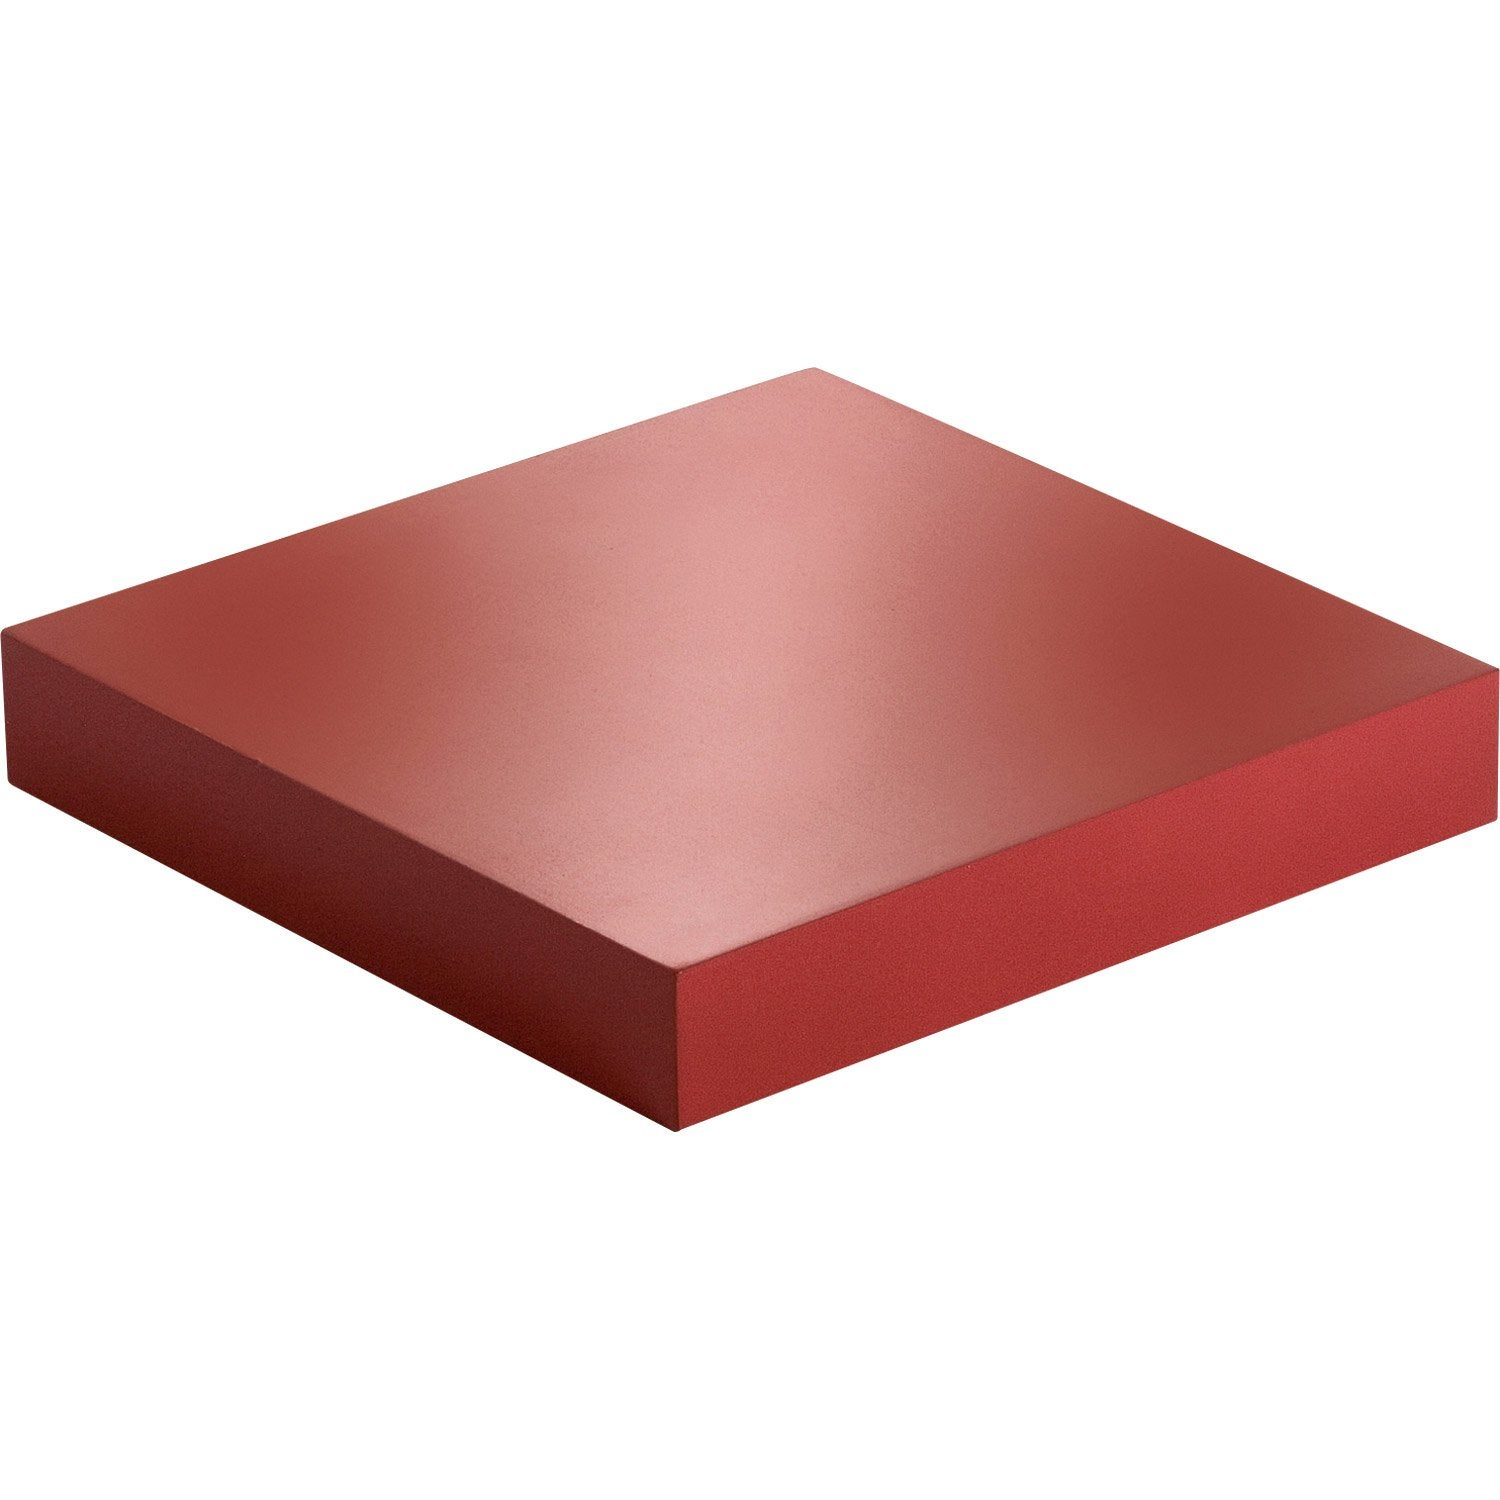 Etag re murale rouge rouge n 3 color spaceo l 23 5 x p 23 5 cm p 38 mm leroy merlin - Etagere murale rouge ...